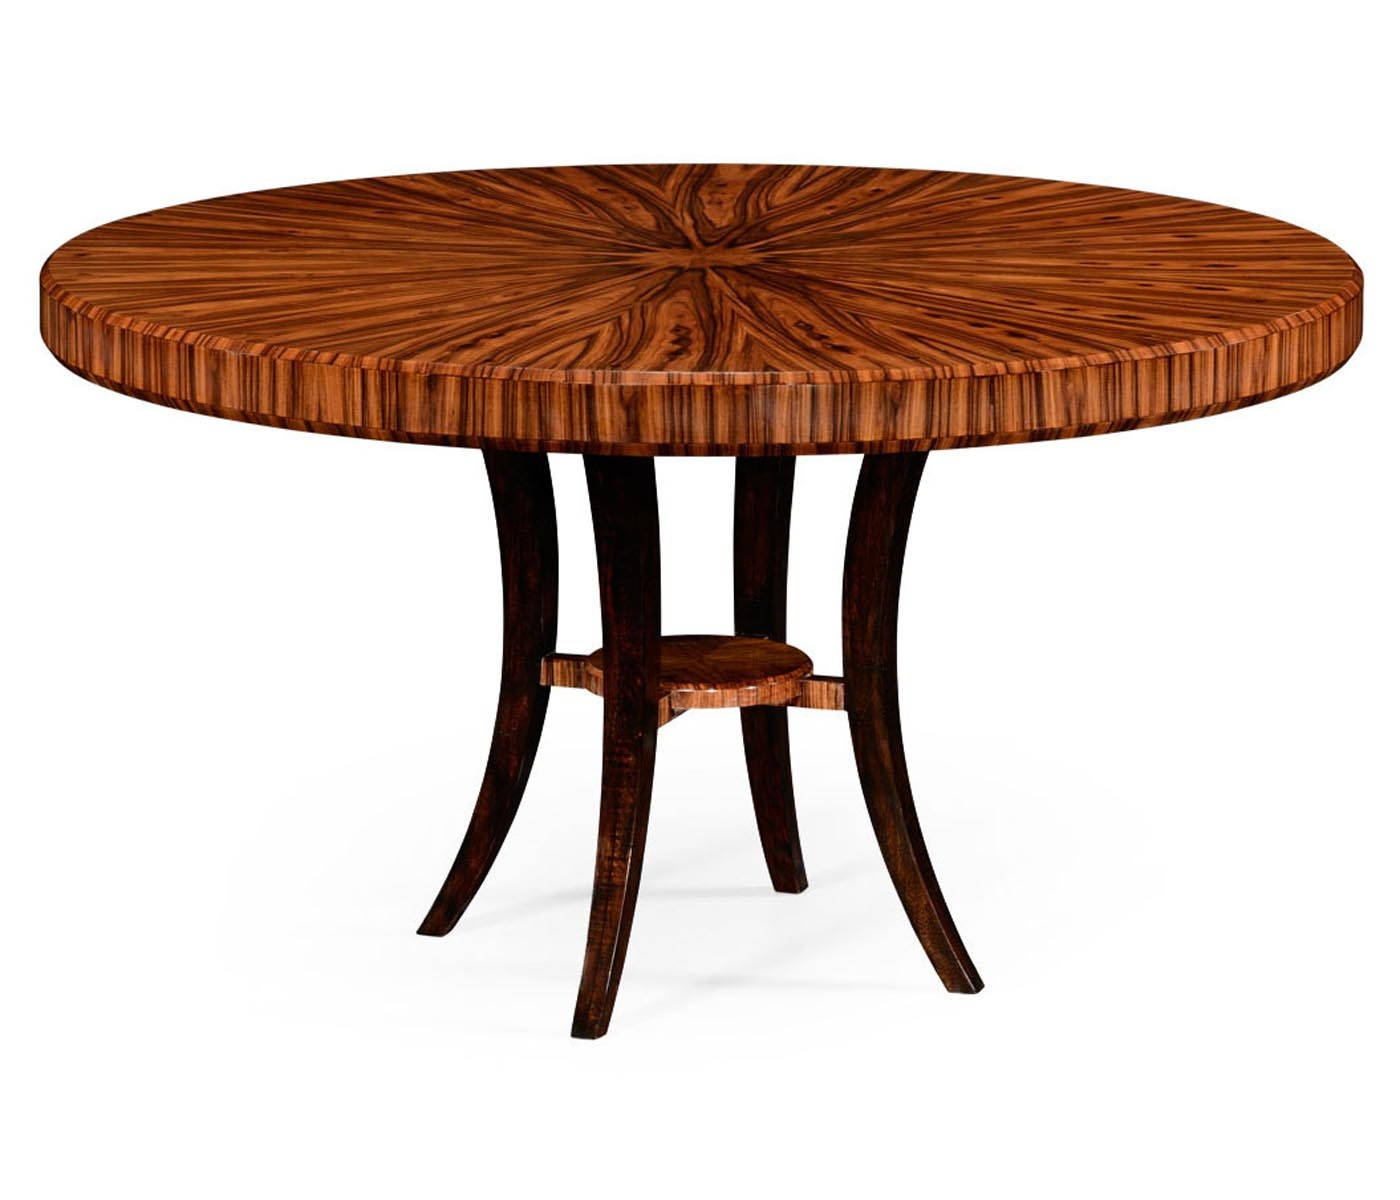 6 seater round dining table swanky interiors for Round dining table